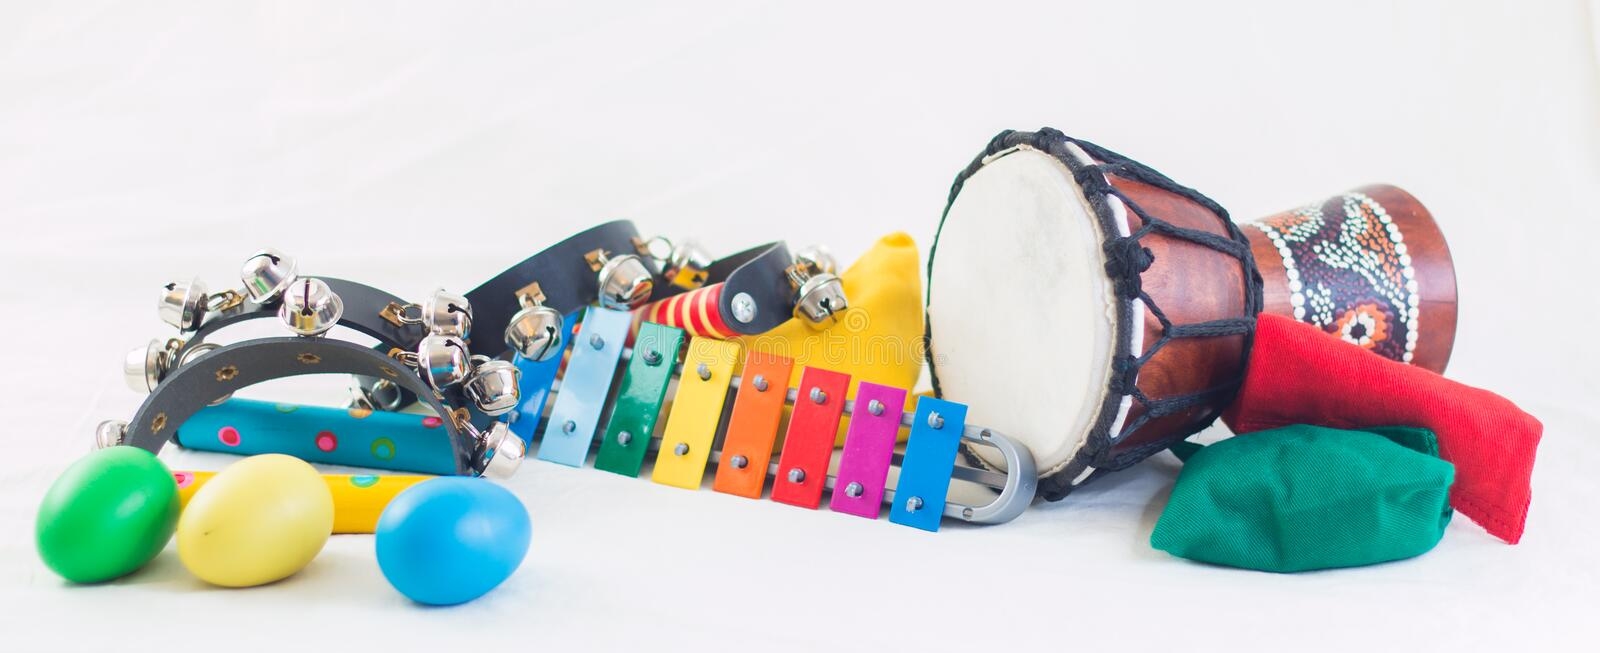 Rythm instruments royalty free stock photography